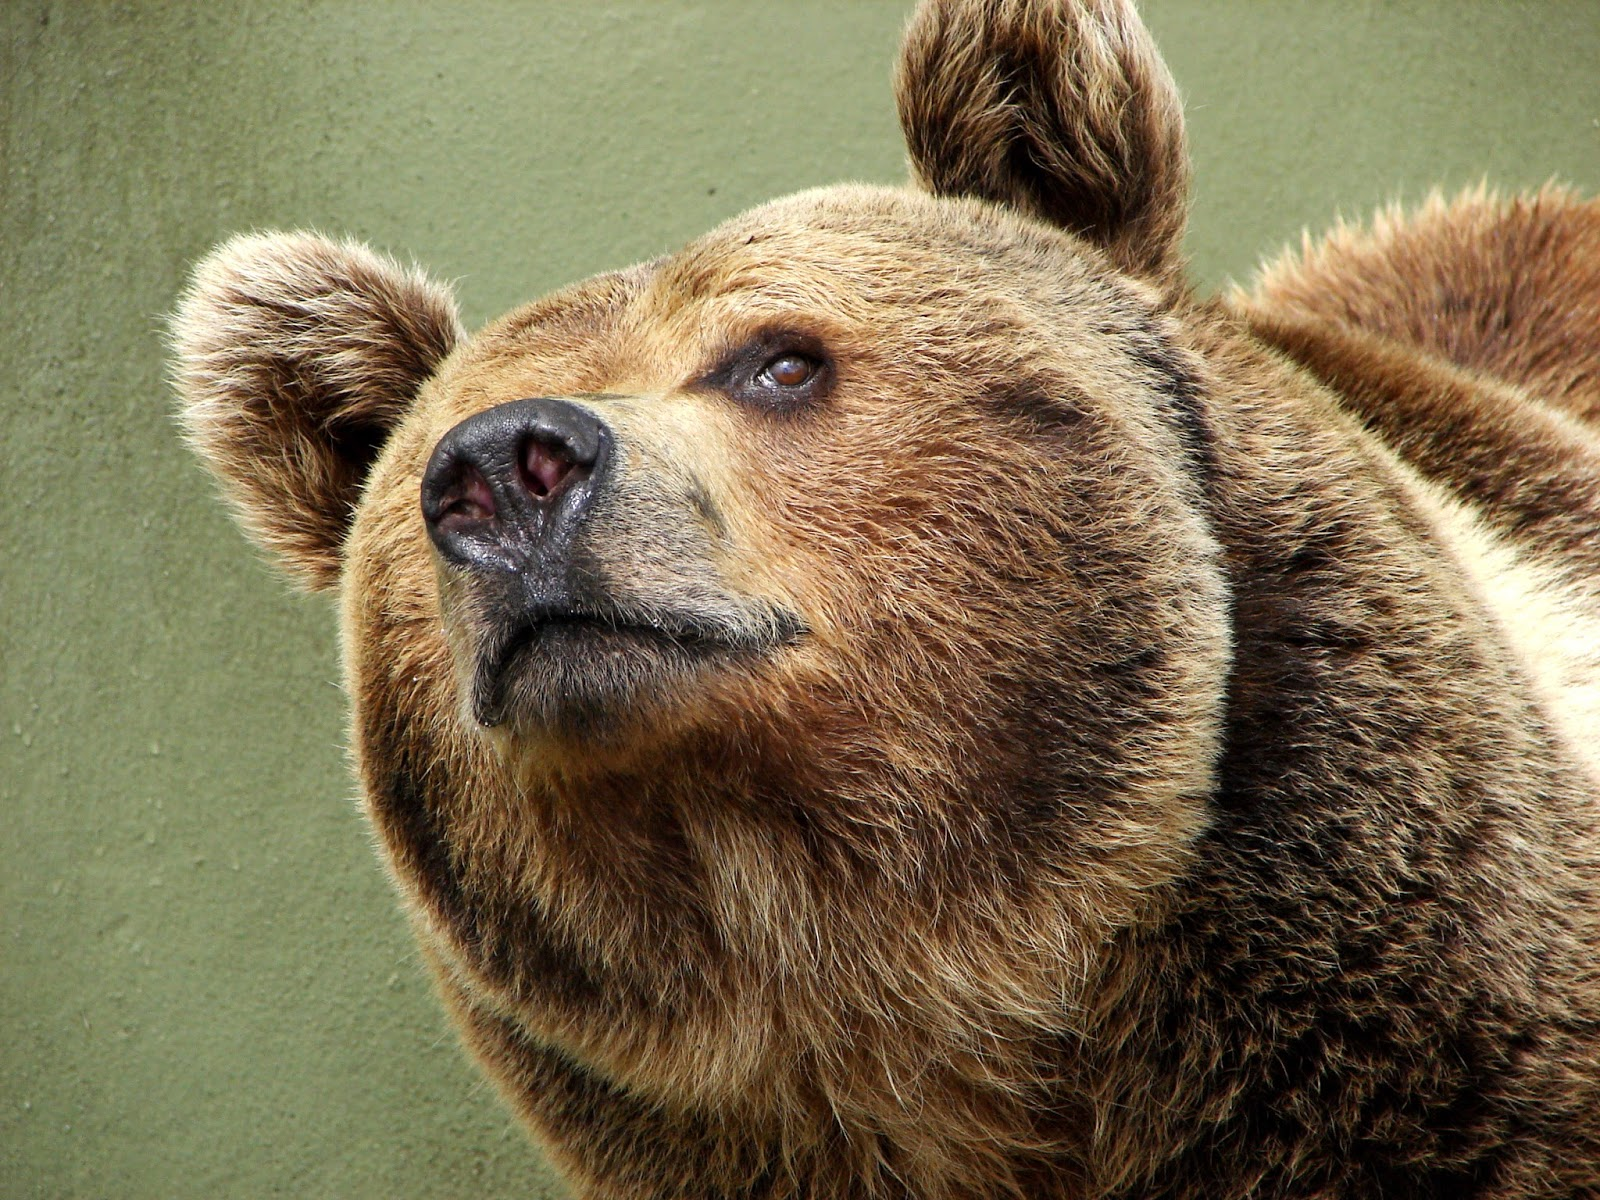 too two late bloomers fuzzy wuzzy is a bear